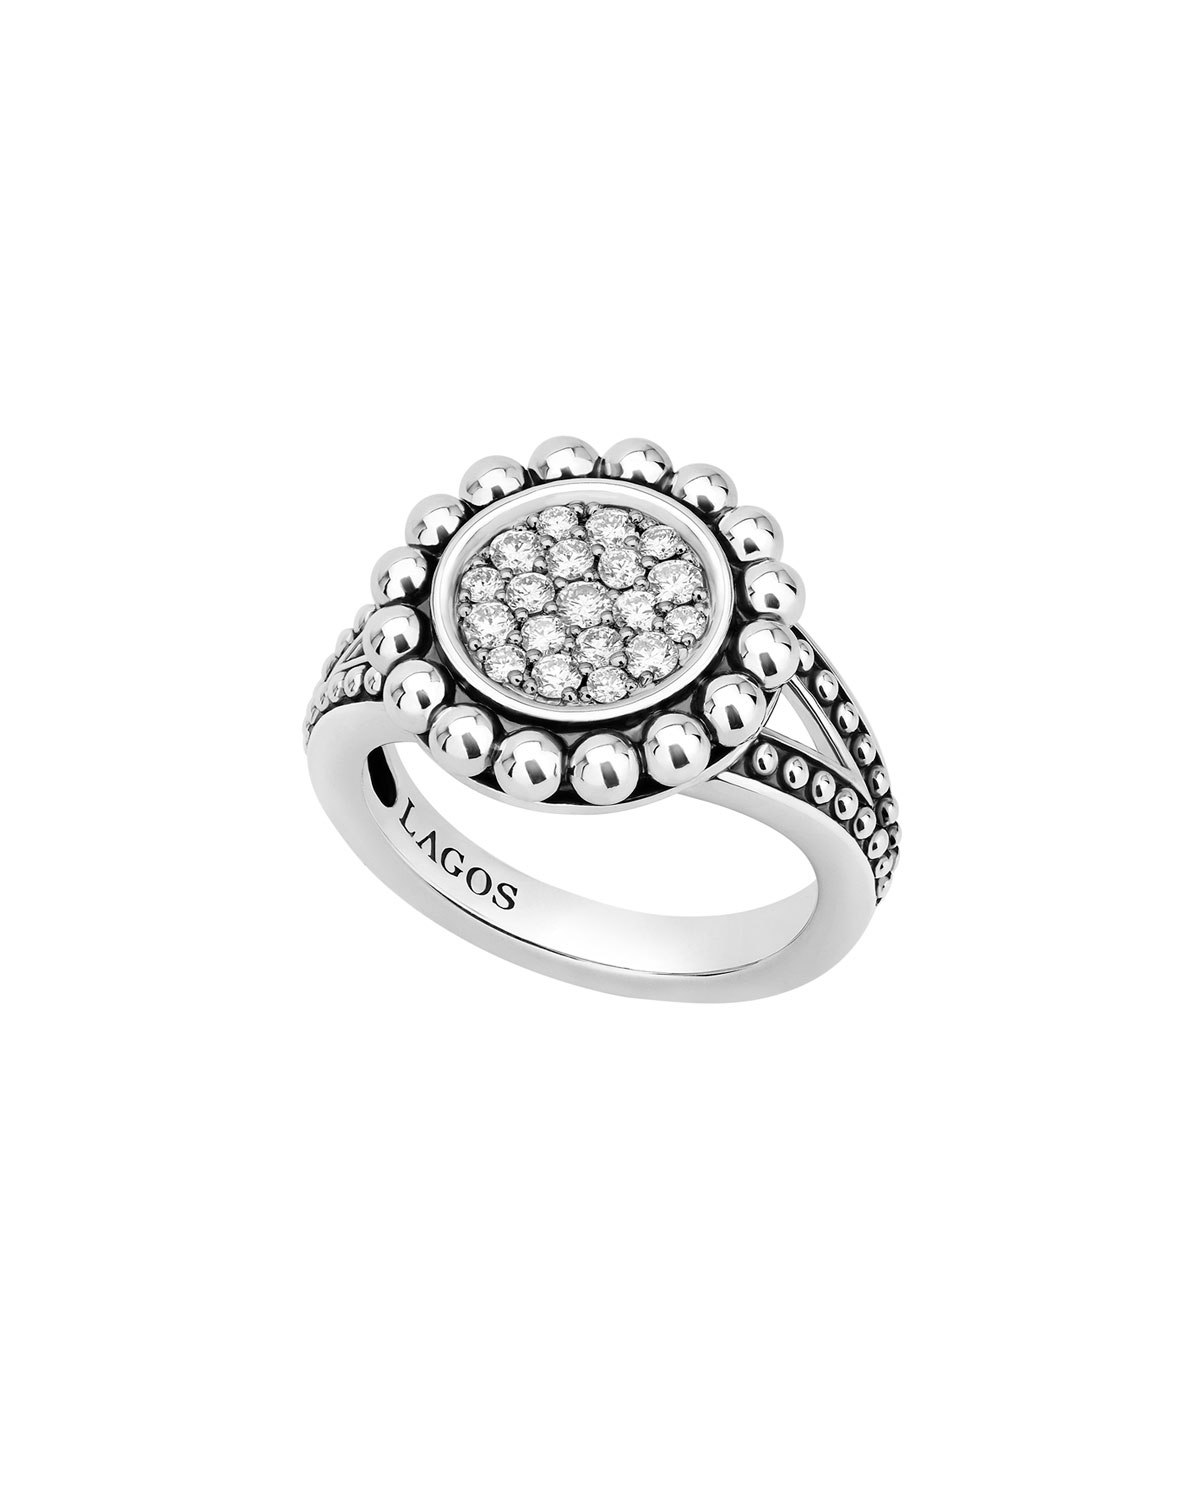 Lagos Caviar Spark 16mm Diamond Ring, Size 7